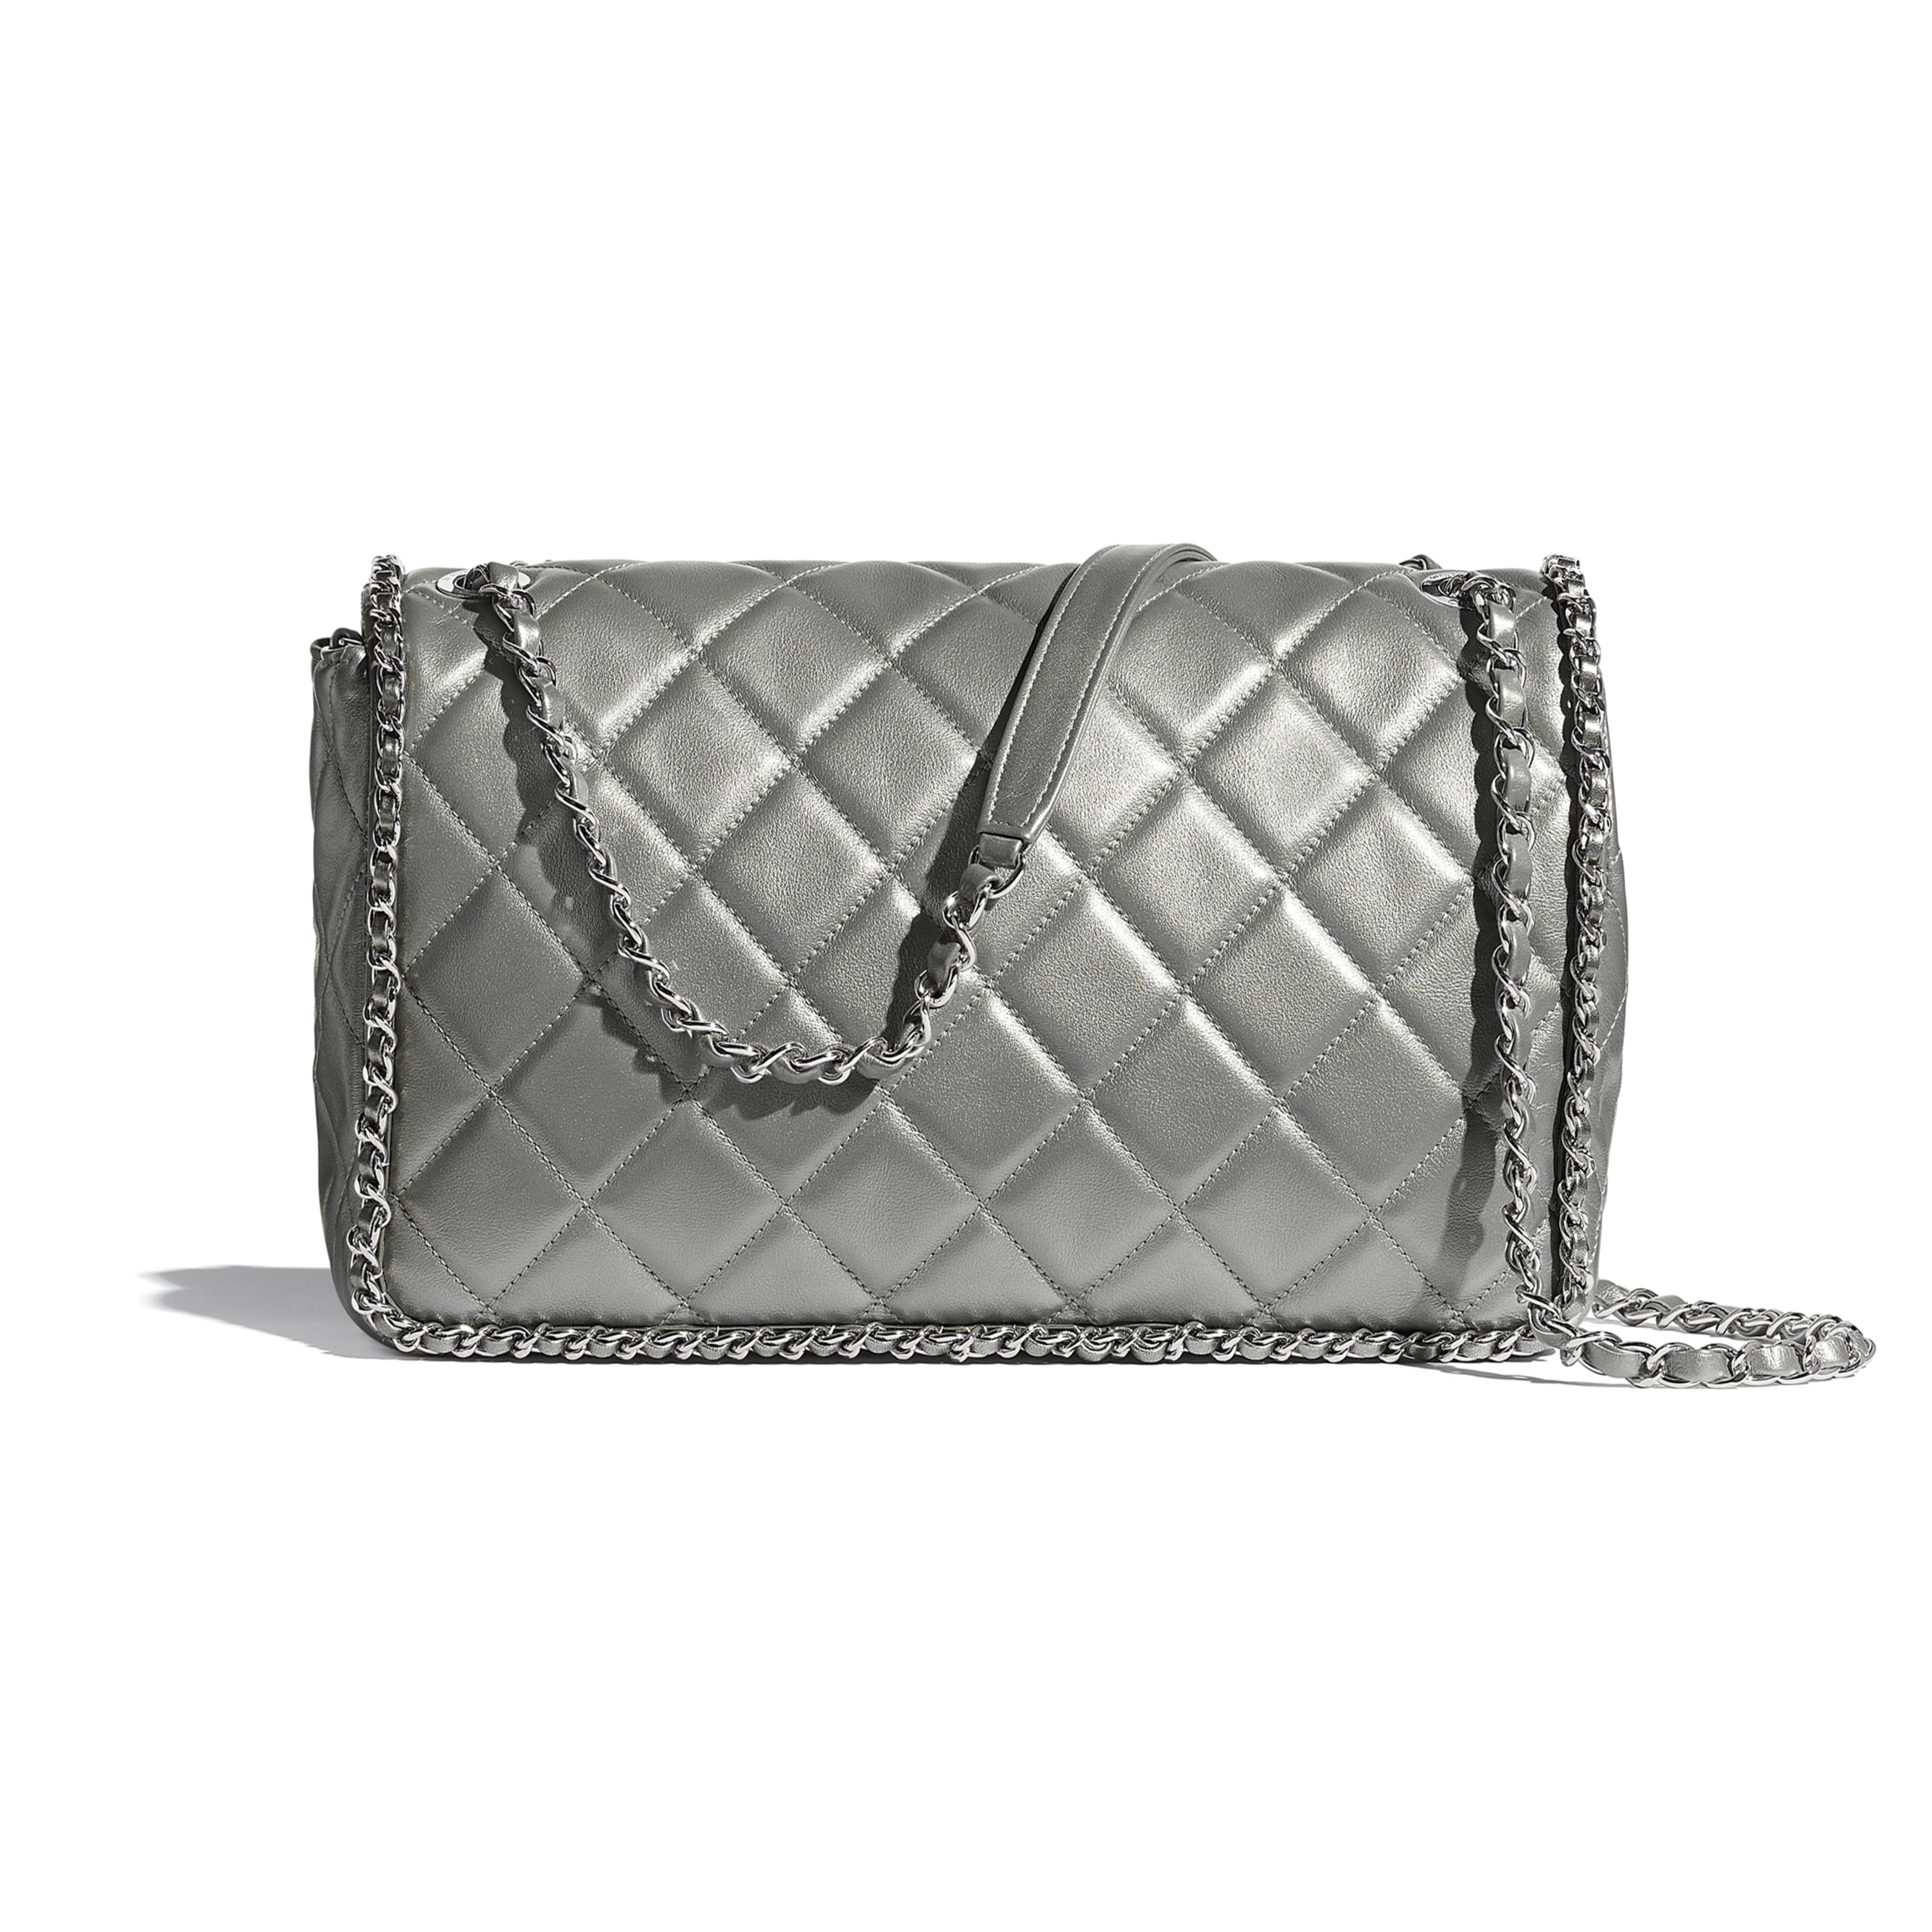 Large Flap Bag - Silver - Metallic Calfskin & Silver-Tone Metal - CHANEL - Alternative view - see standard sized version